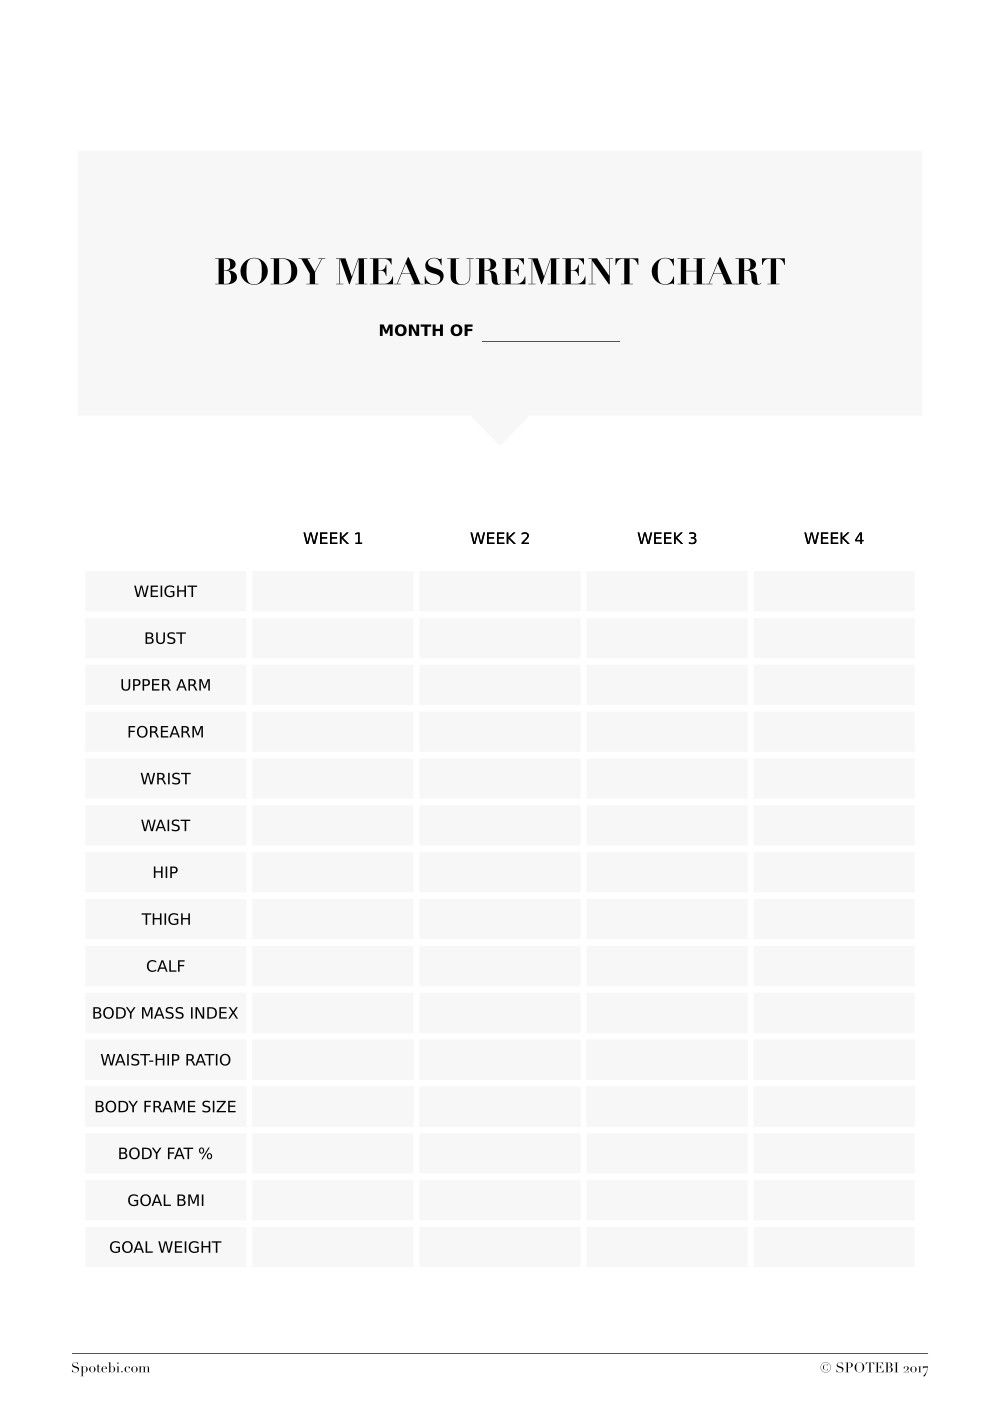 Ideal Body Weight Printable | Living A Better Healthy Lifestyle ...